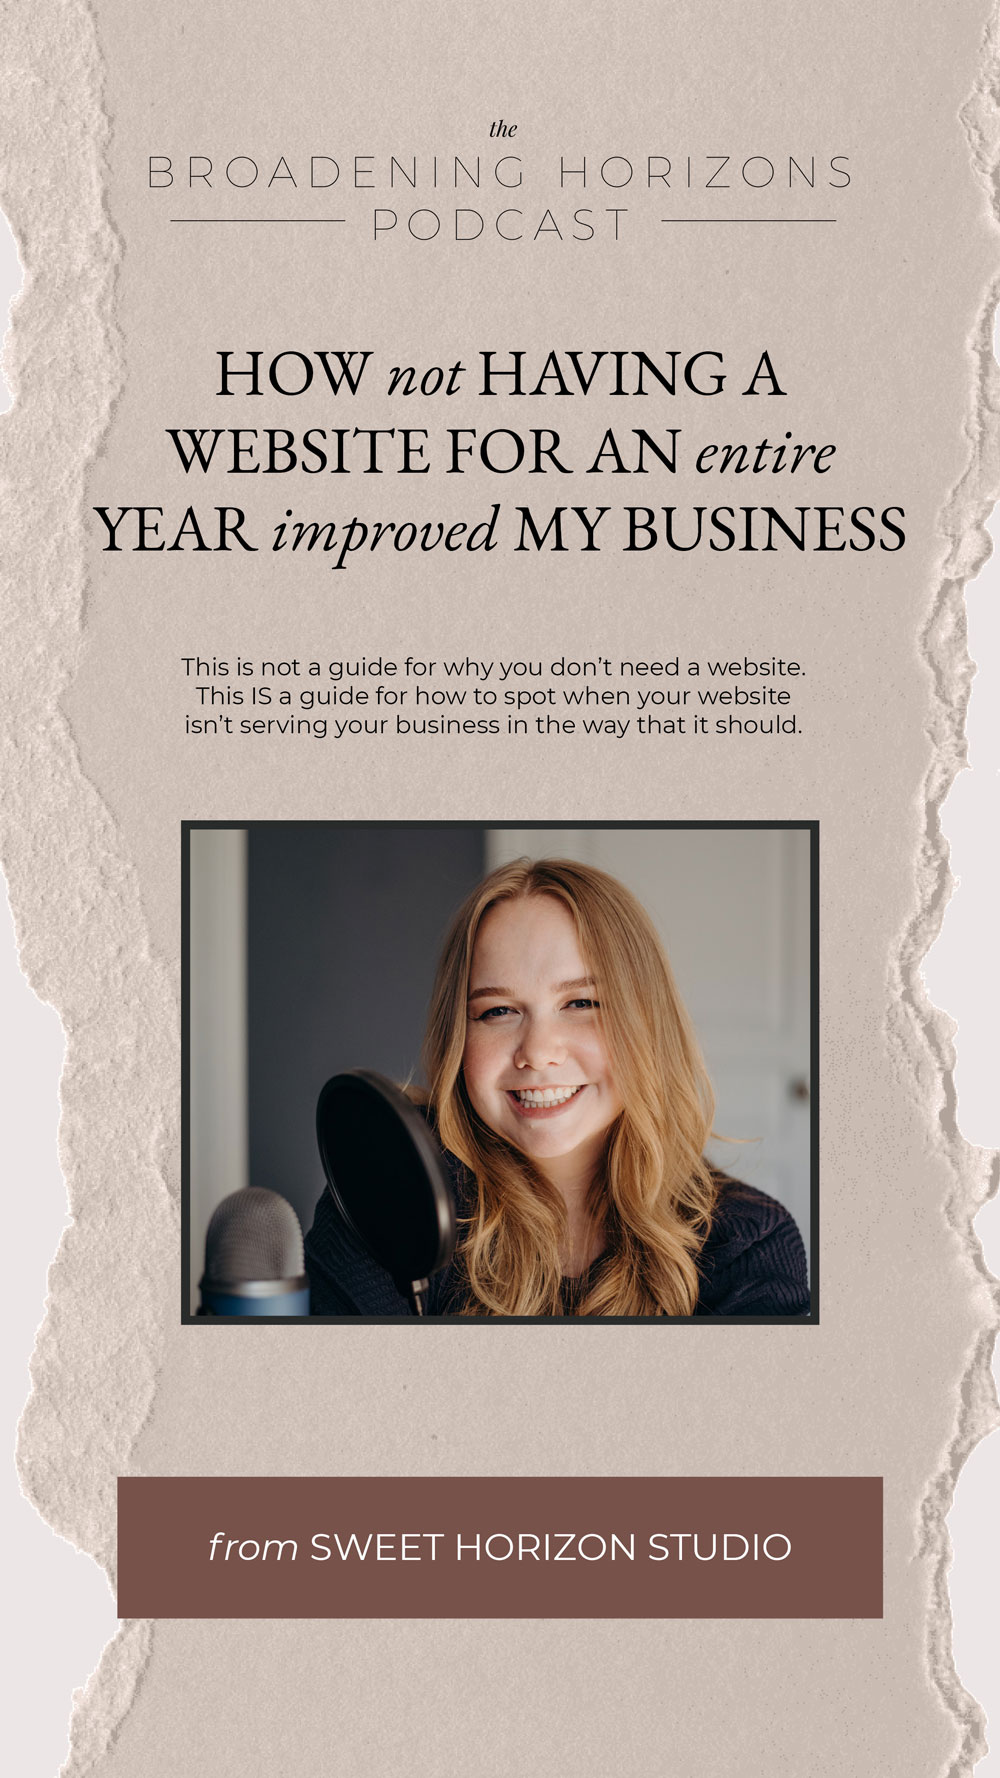 How NOT having a website for an entire year improved my business from www.sweethorizonblog.com